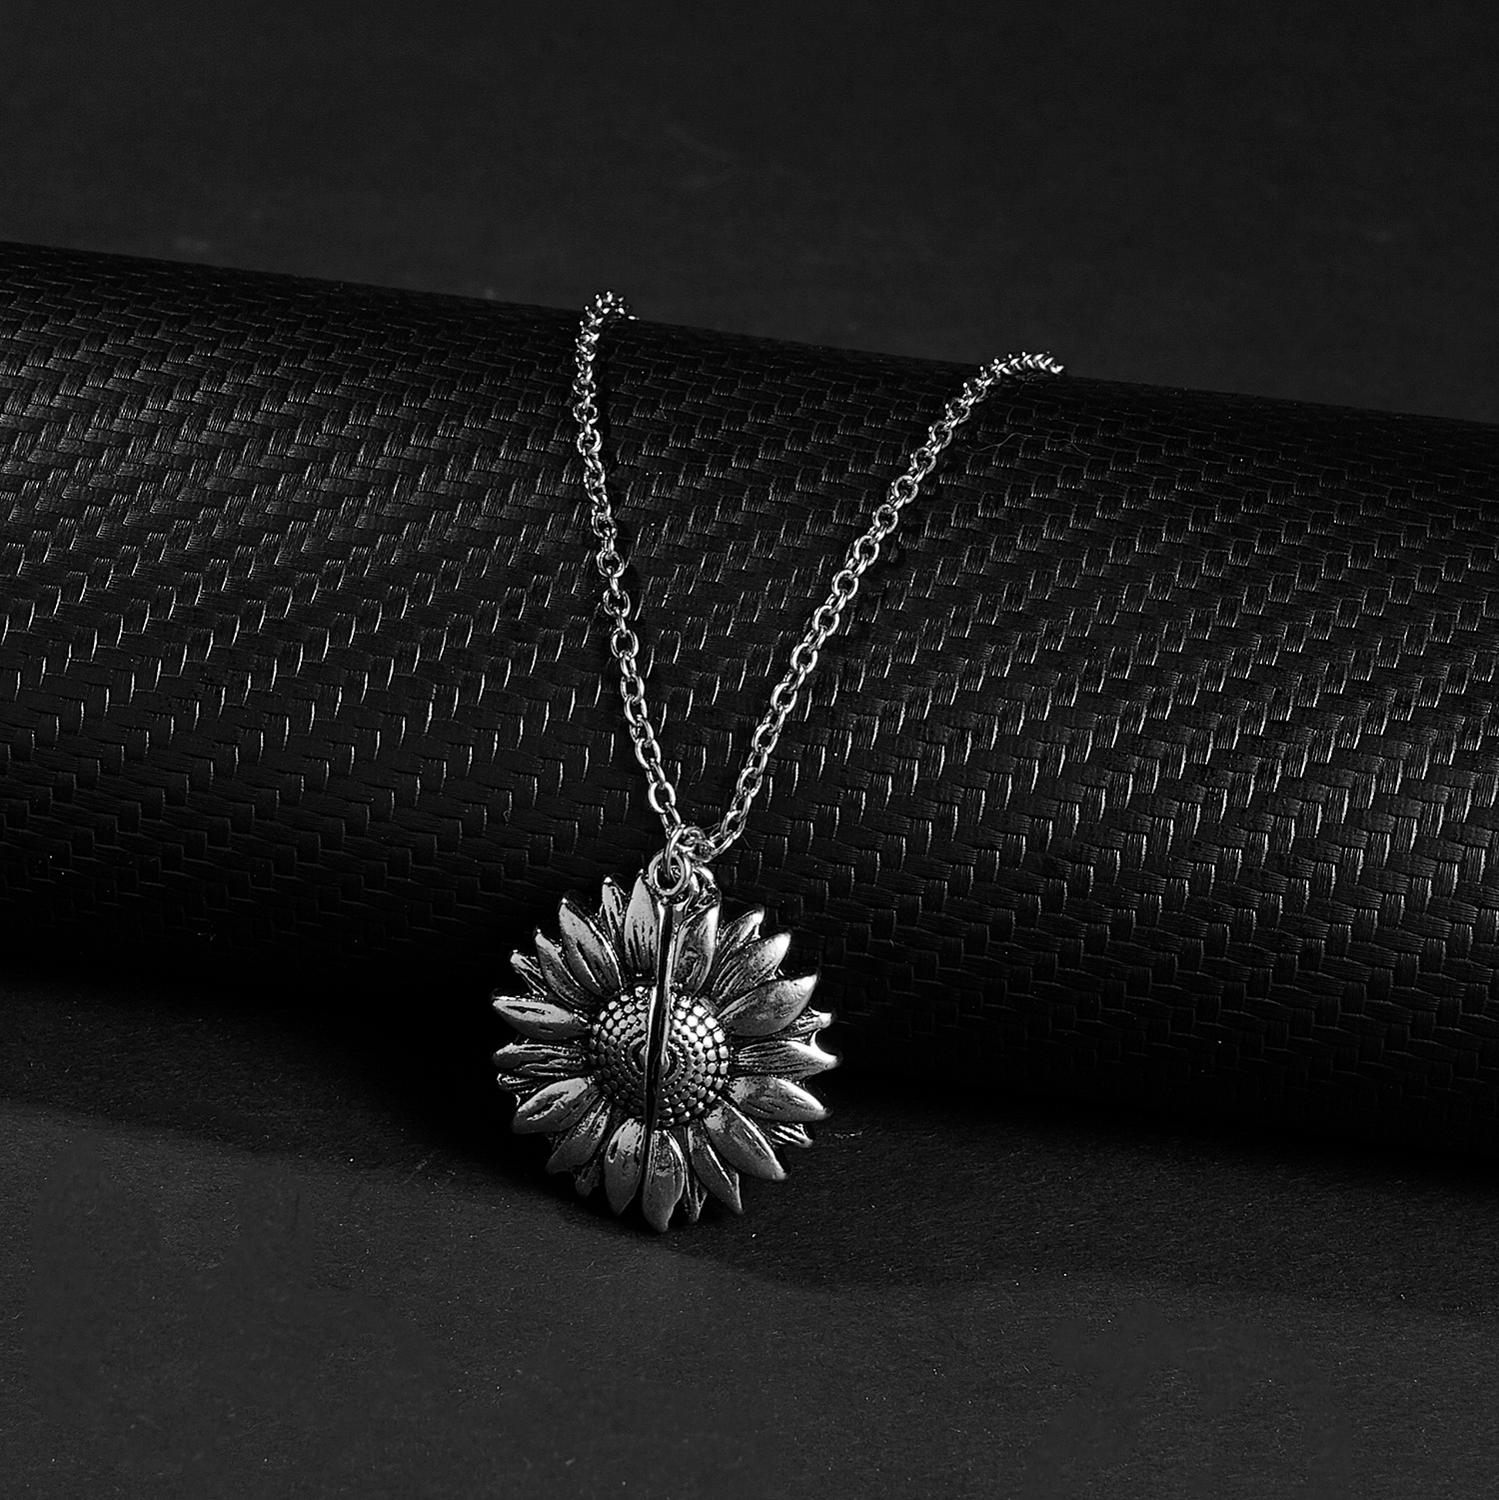 Sunflower Necklace | You Are My Sunshine Pendant 3